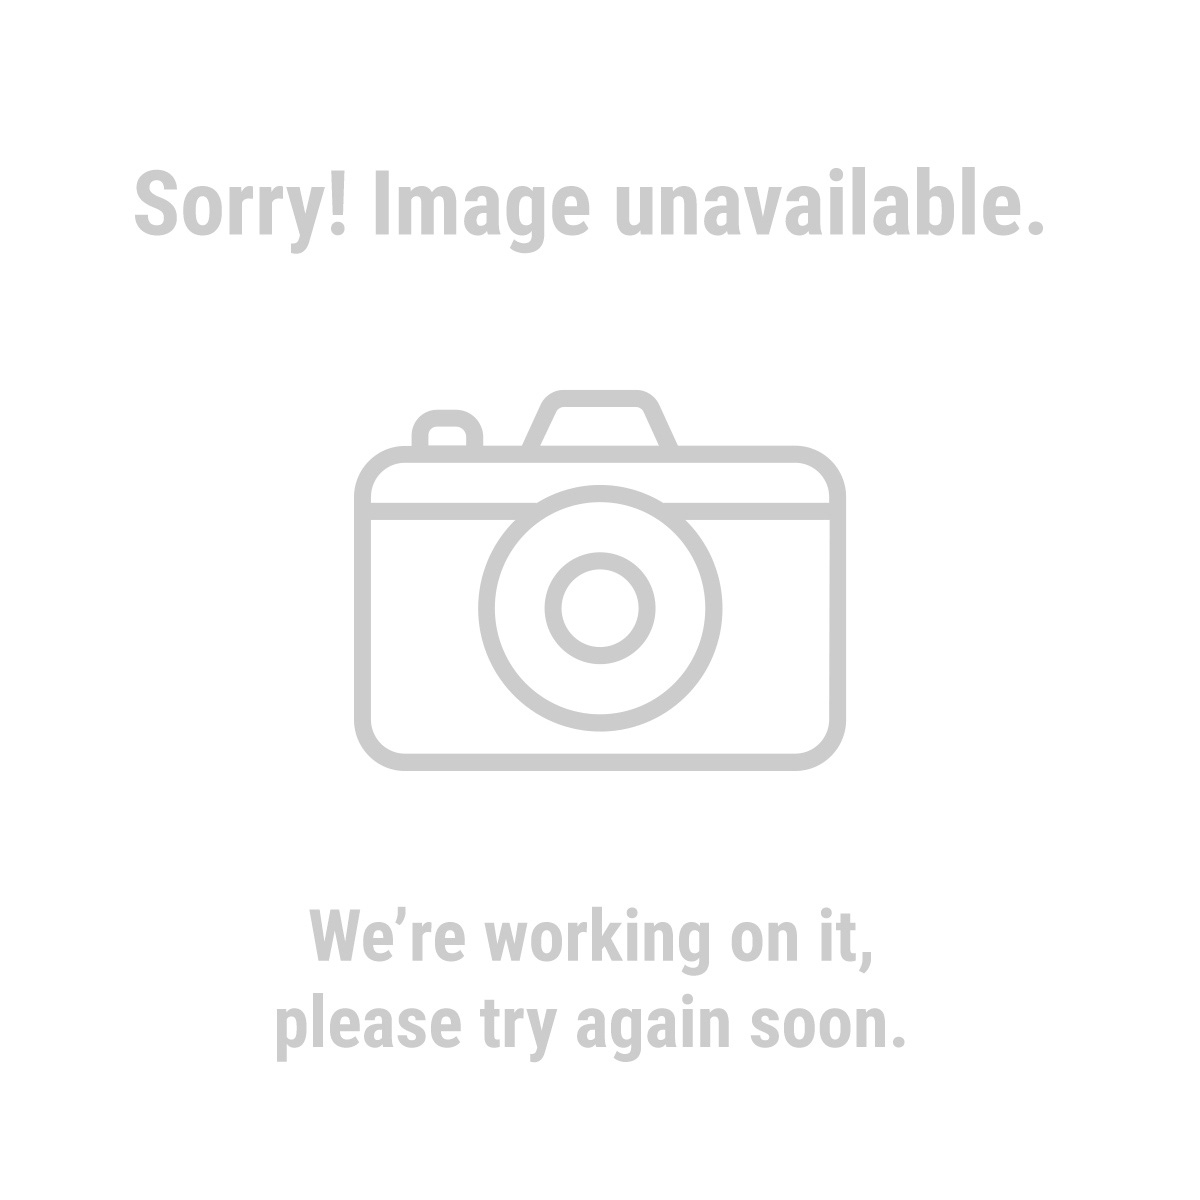 Haul-Master 95541 Manual Strap Winch